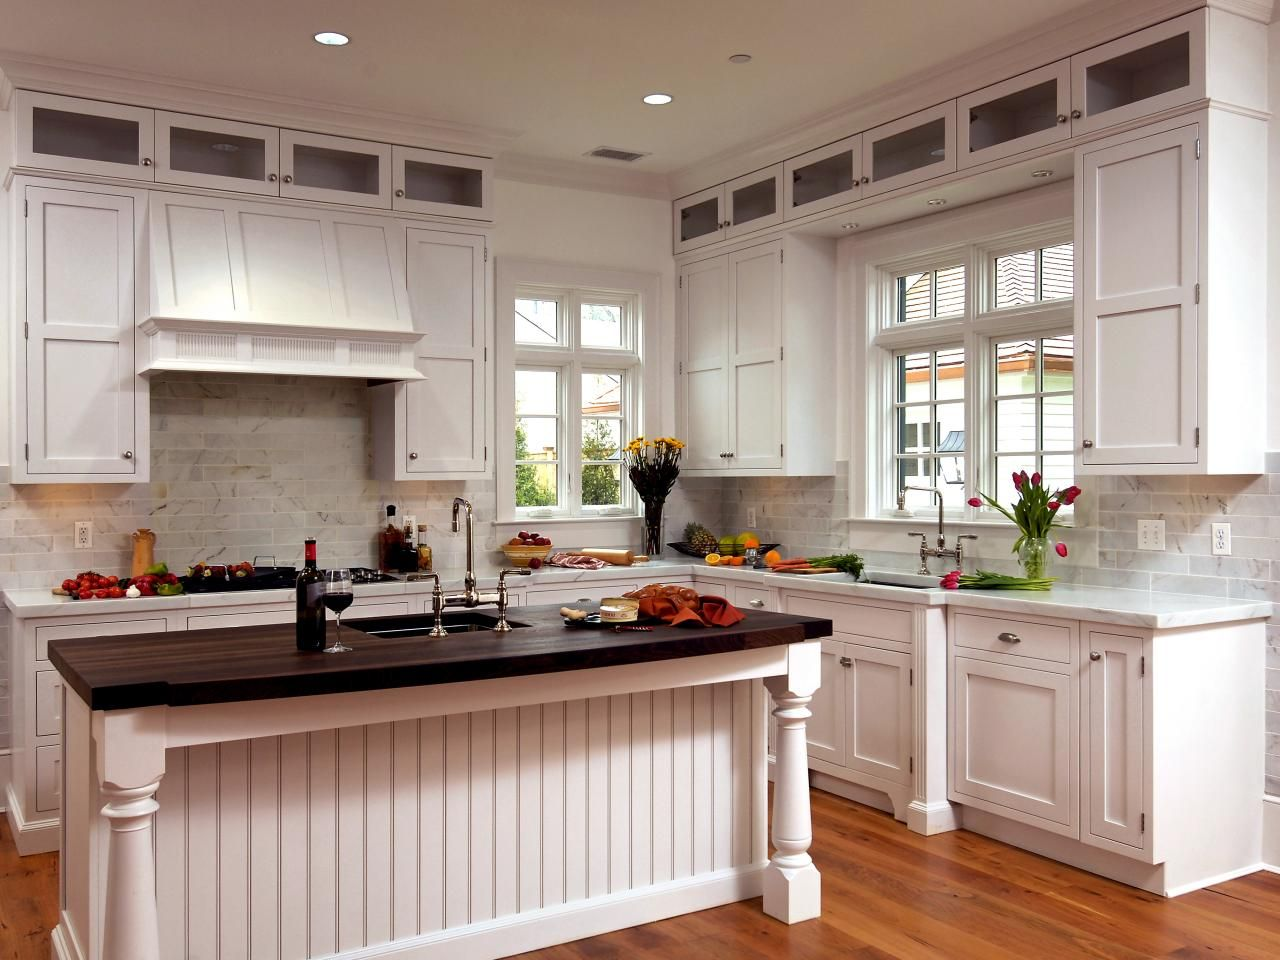 White Beadboard Kitchen Cabinets This Airy Kitchen Boasts White Cabinetry A White Range